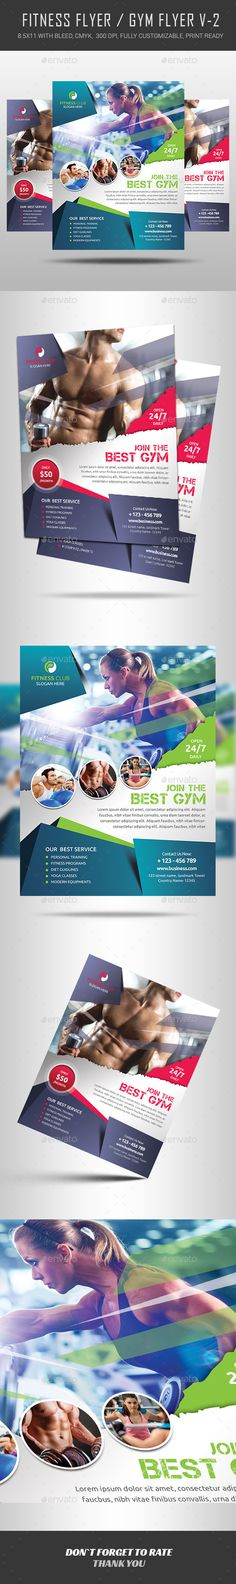 Edit Fitness Flyer / Gym Flyer on Behance